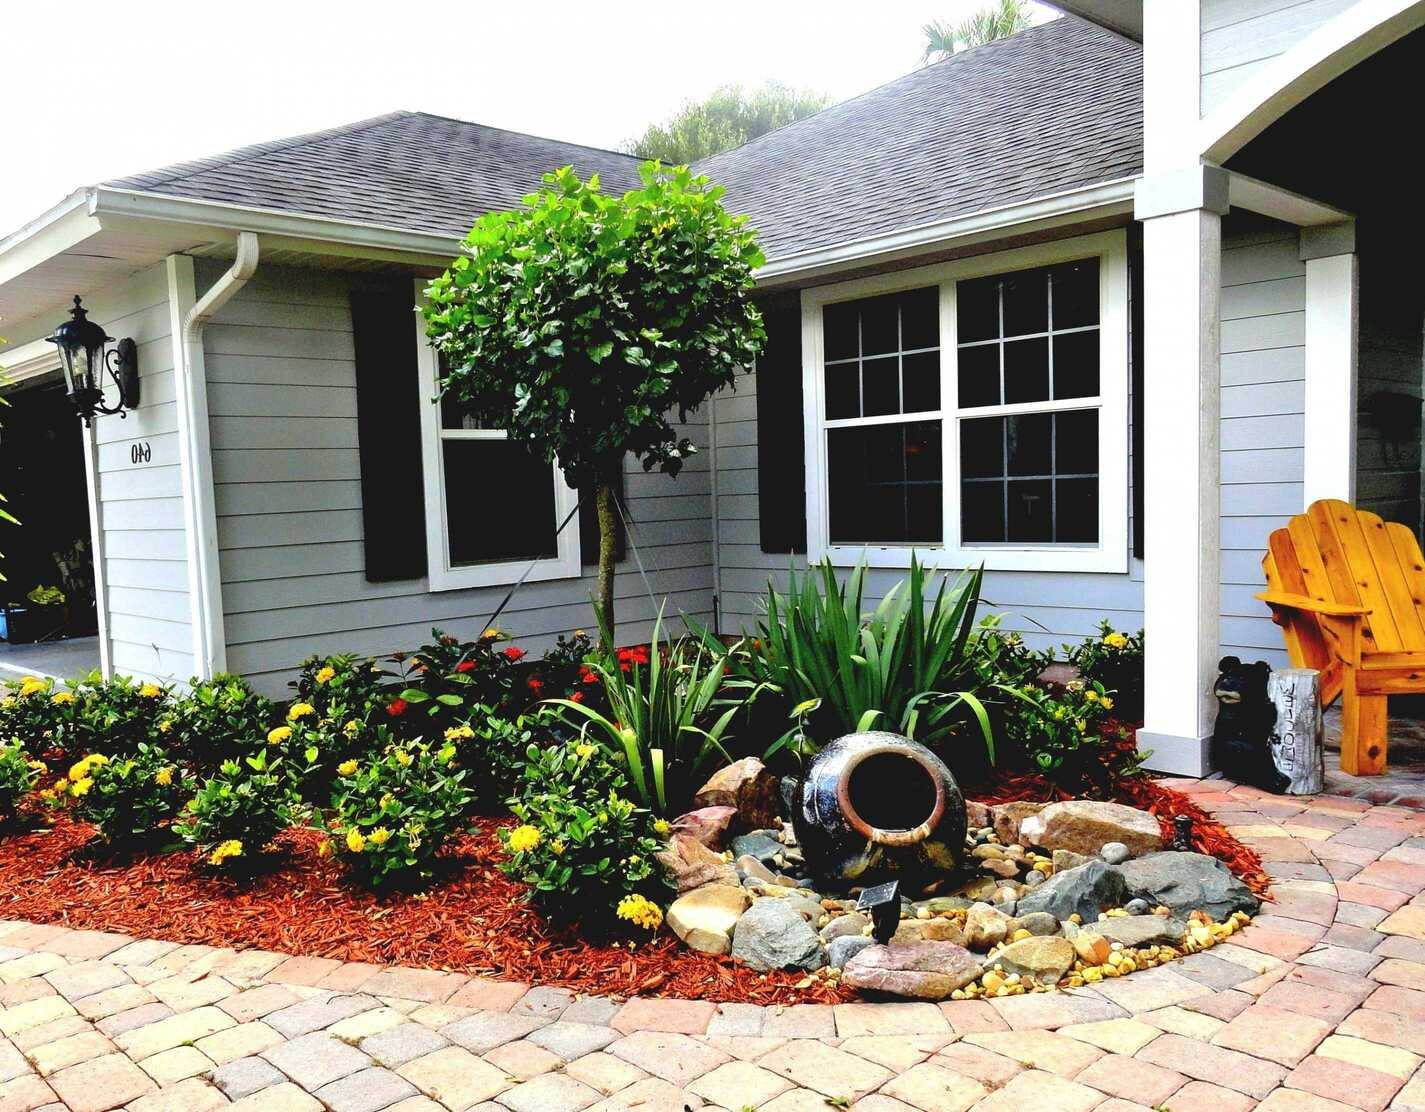 Few Small Garden Designs That You Can Have In Your Apartment on No Grass Yard Ideas id=68475